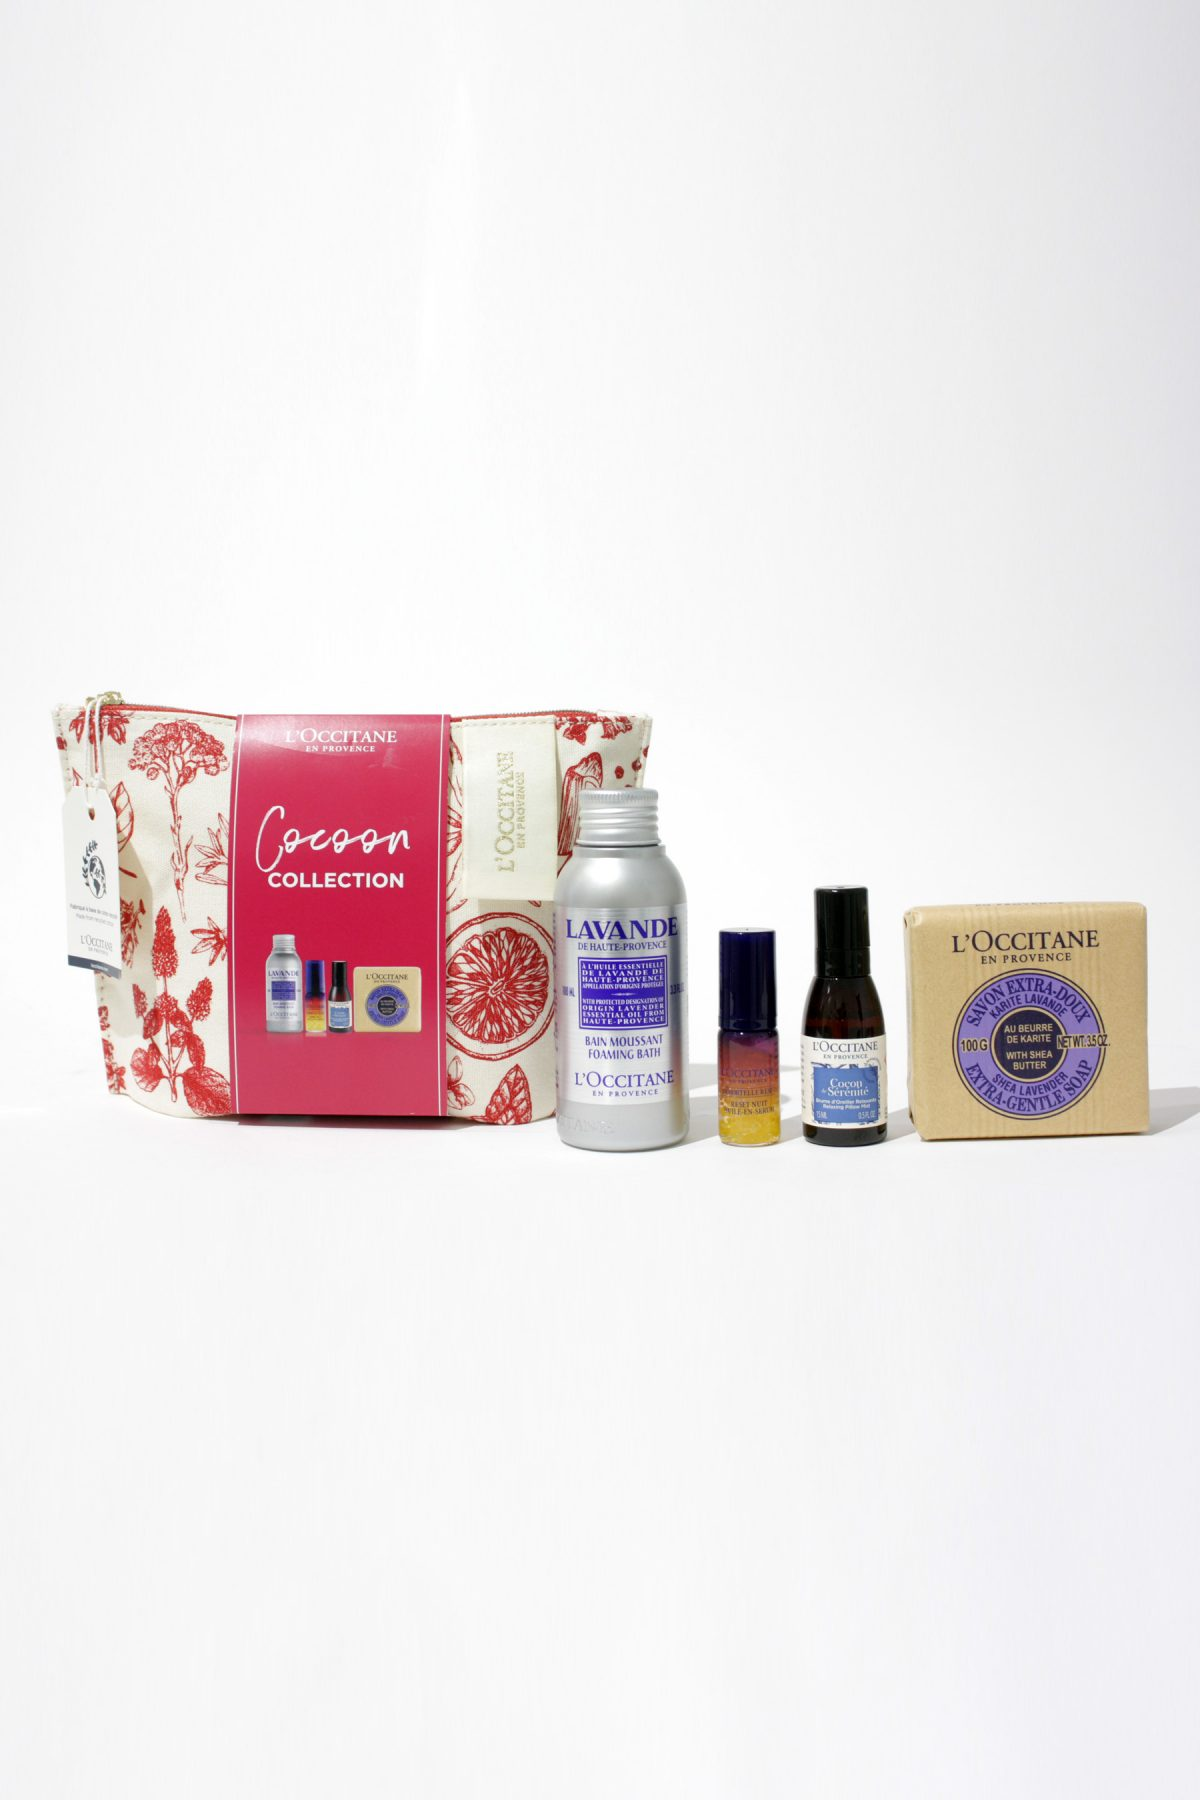 Loccitane Cocoon collection